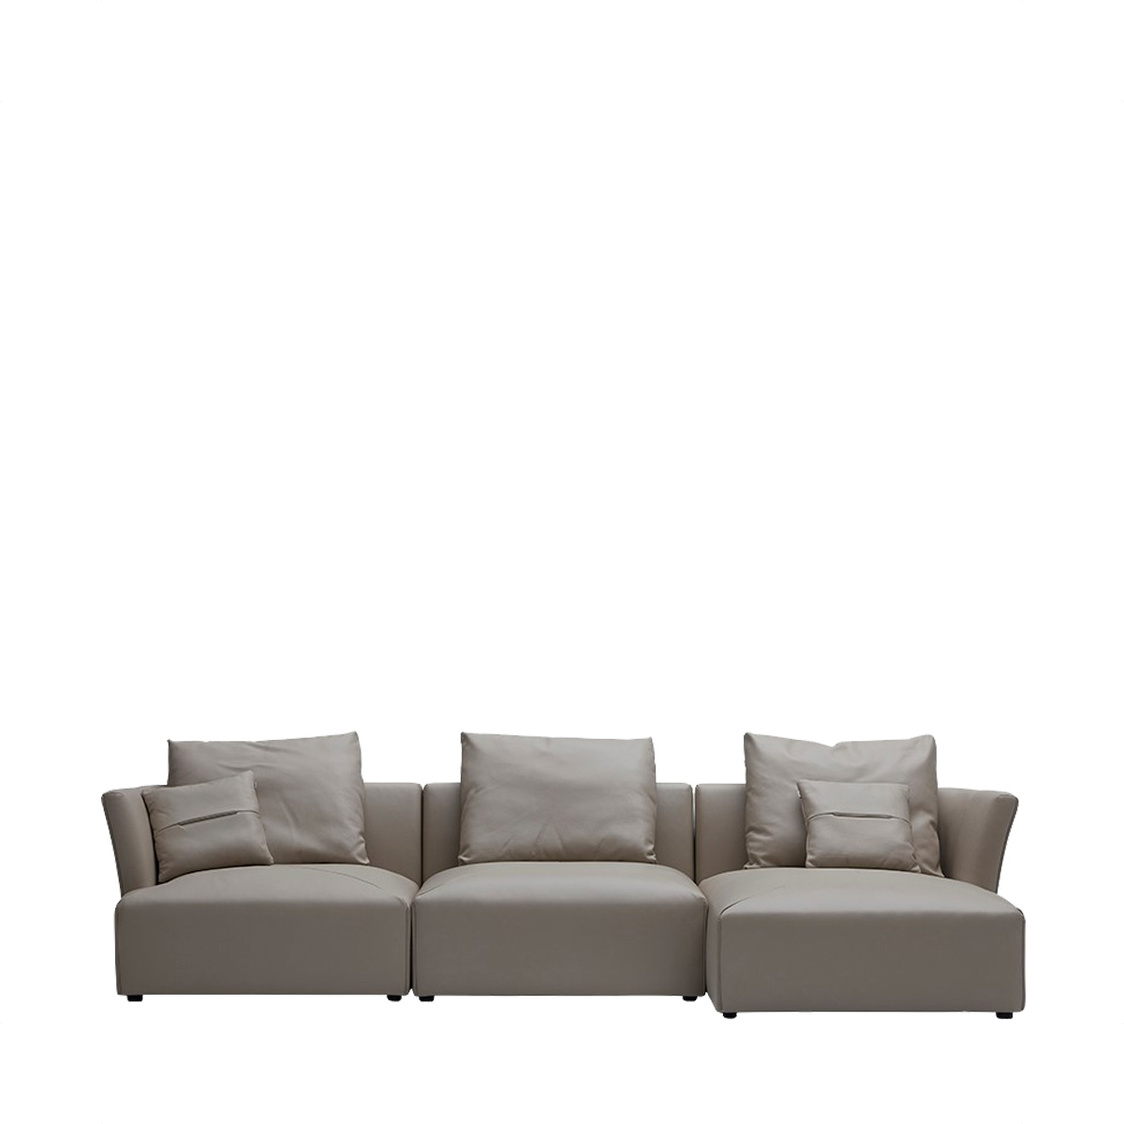 Iloom Bergen Couch Right Leather HCS744CR-L391C